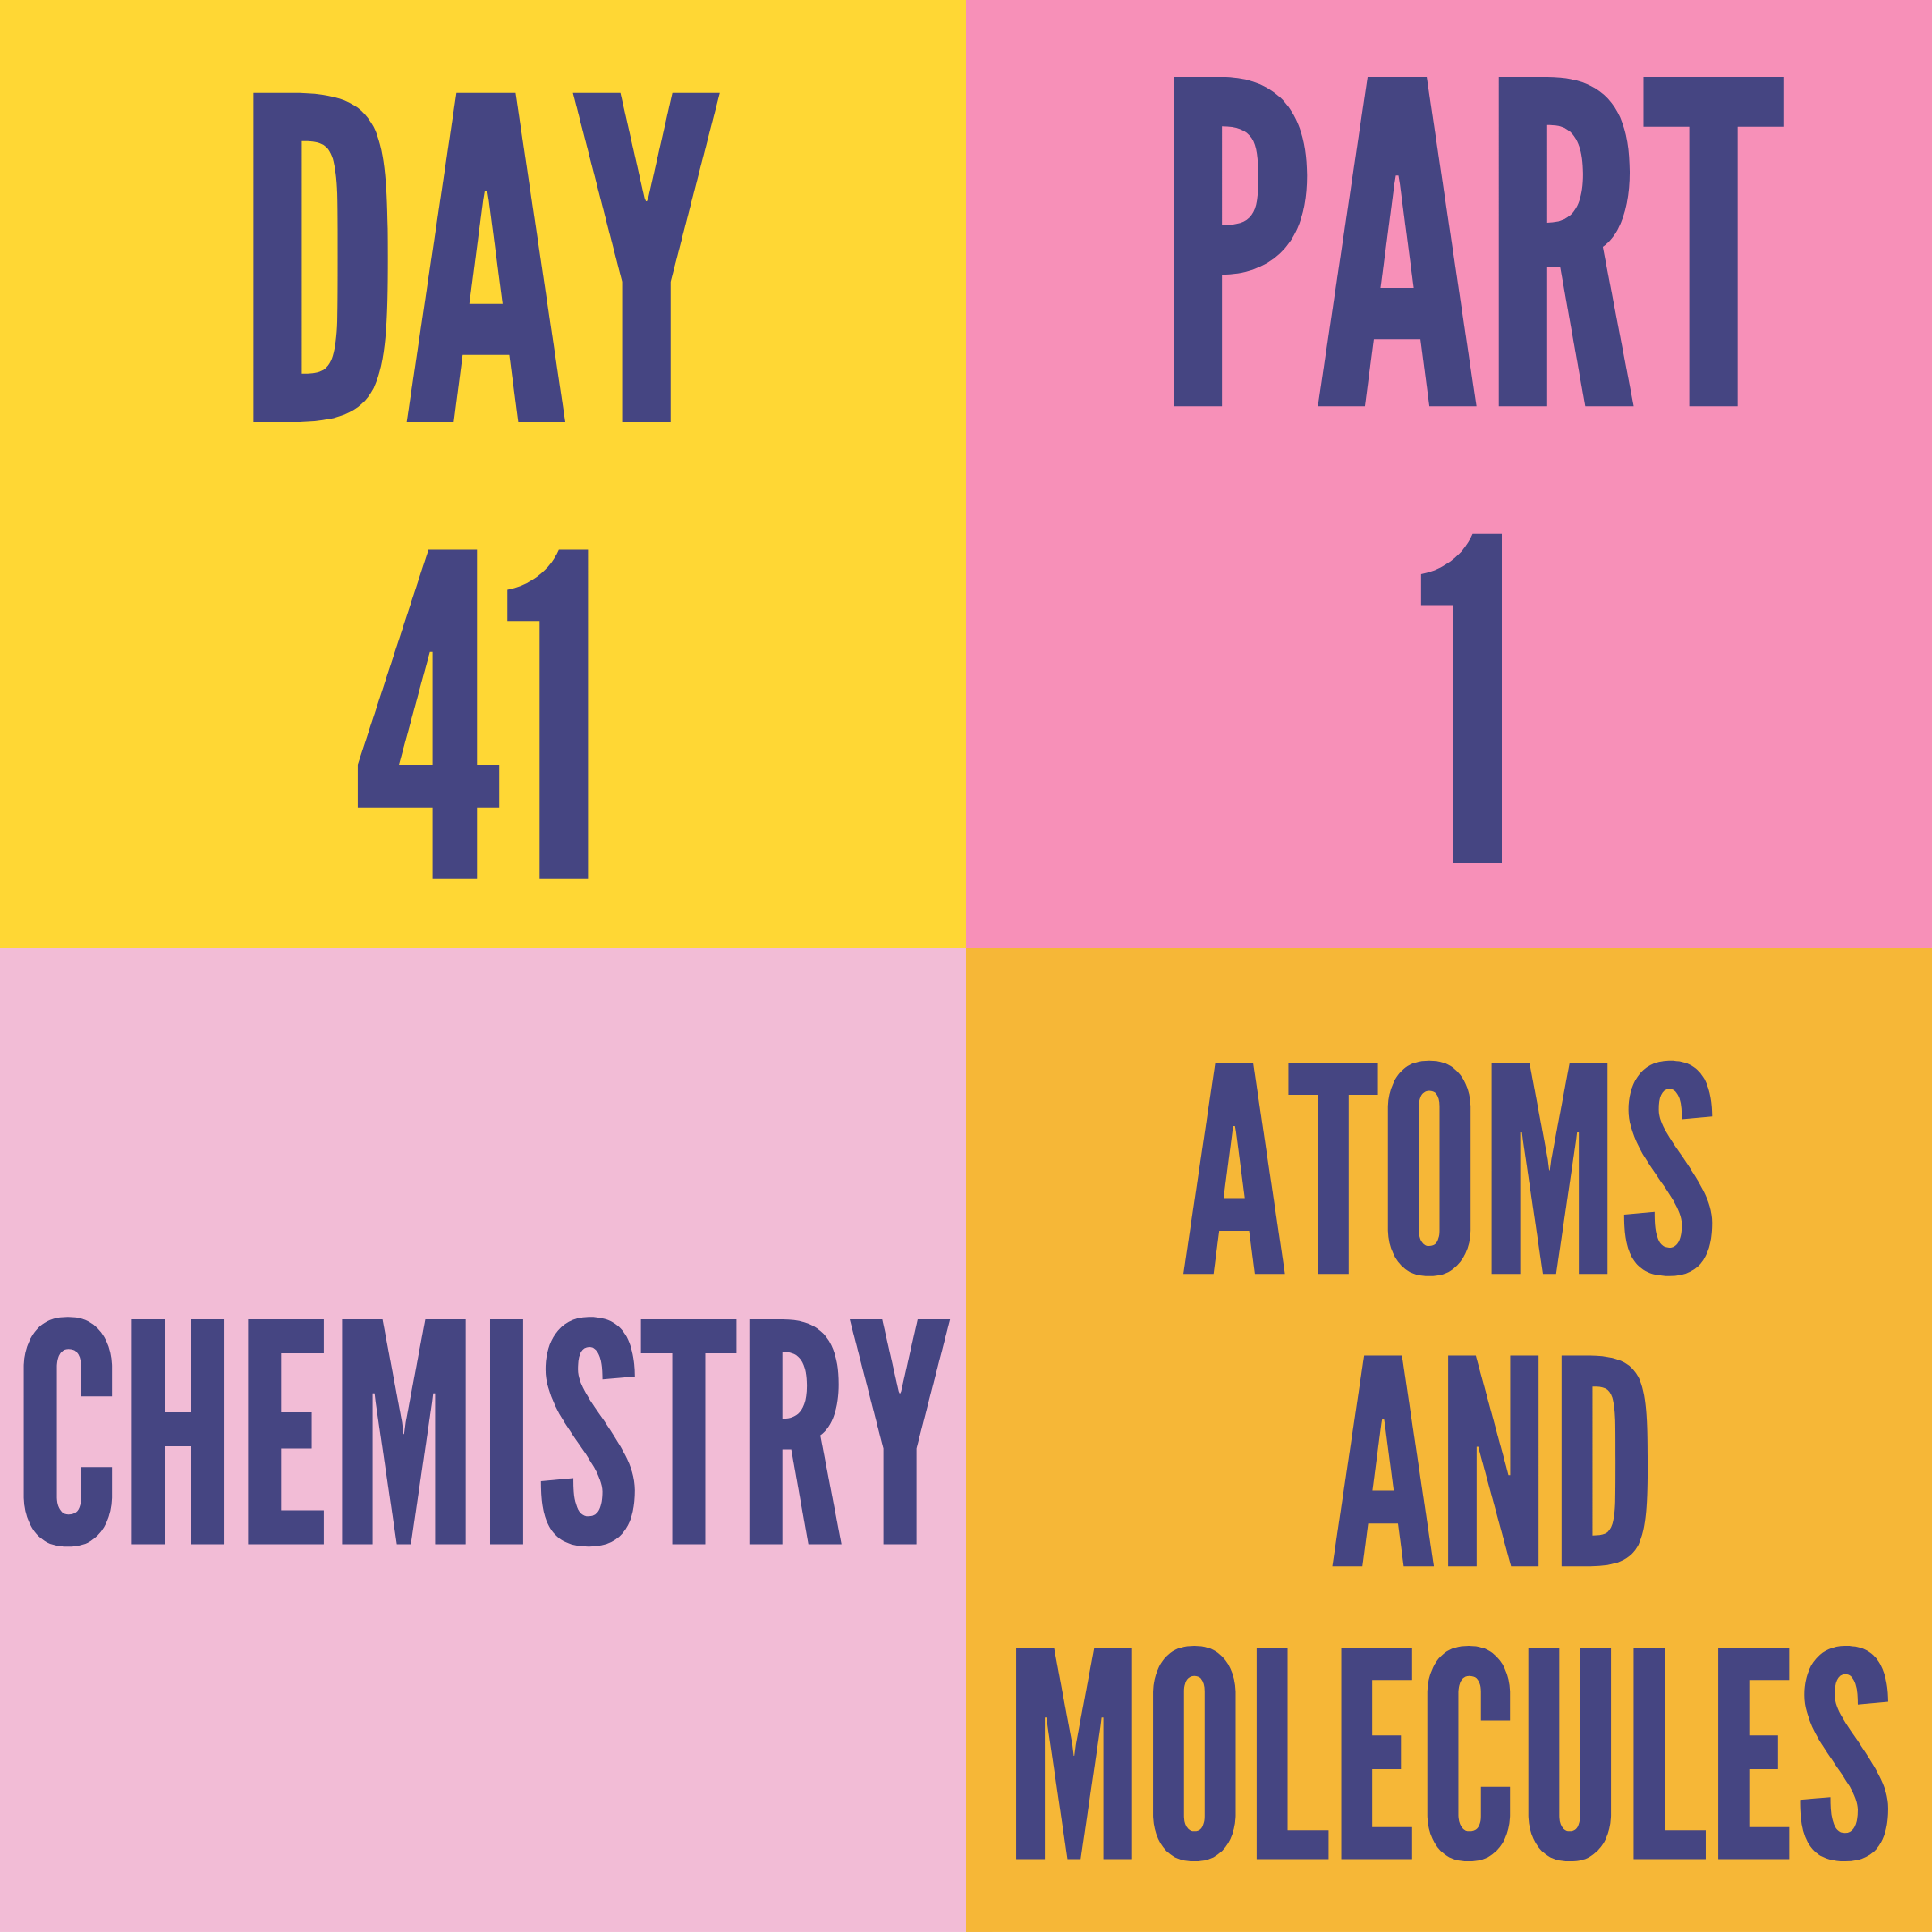 DAY-41 PART-1 ATOMS AND MOLECULES